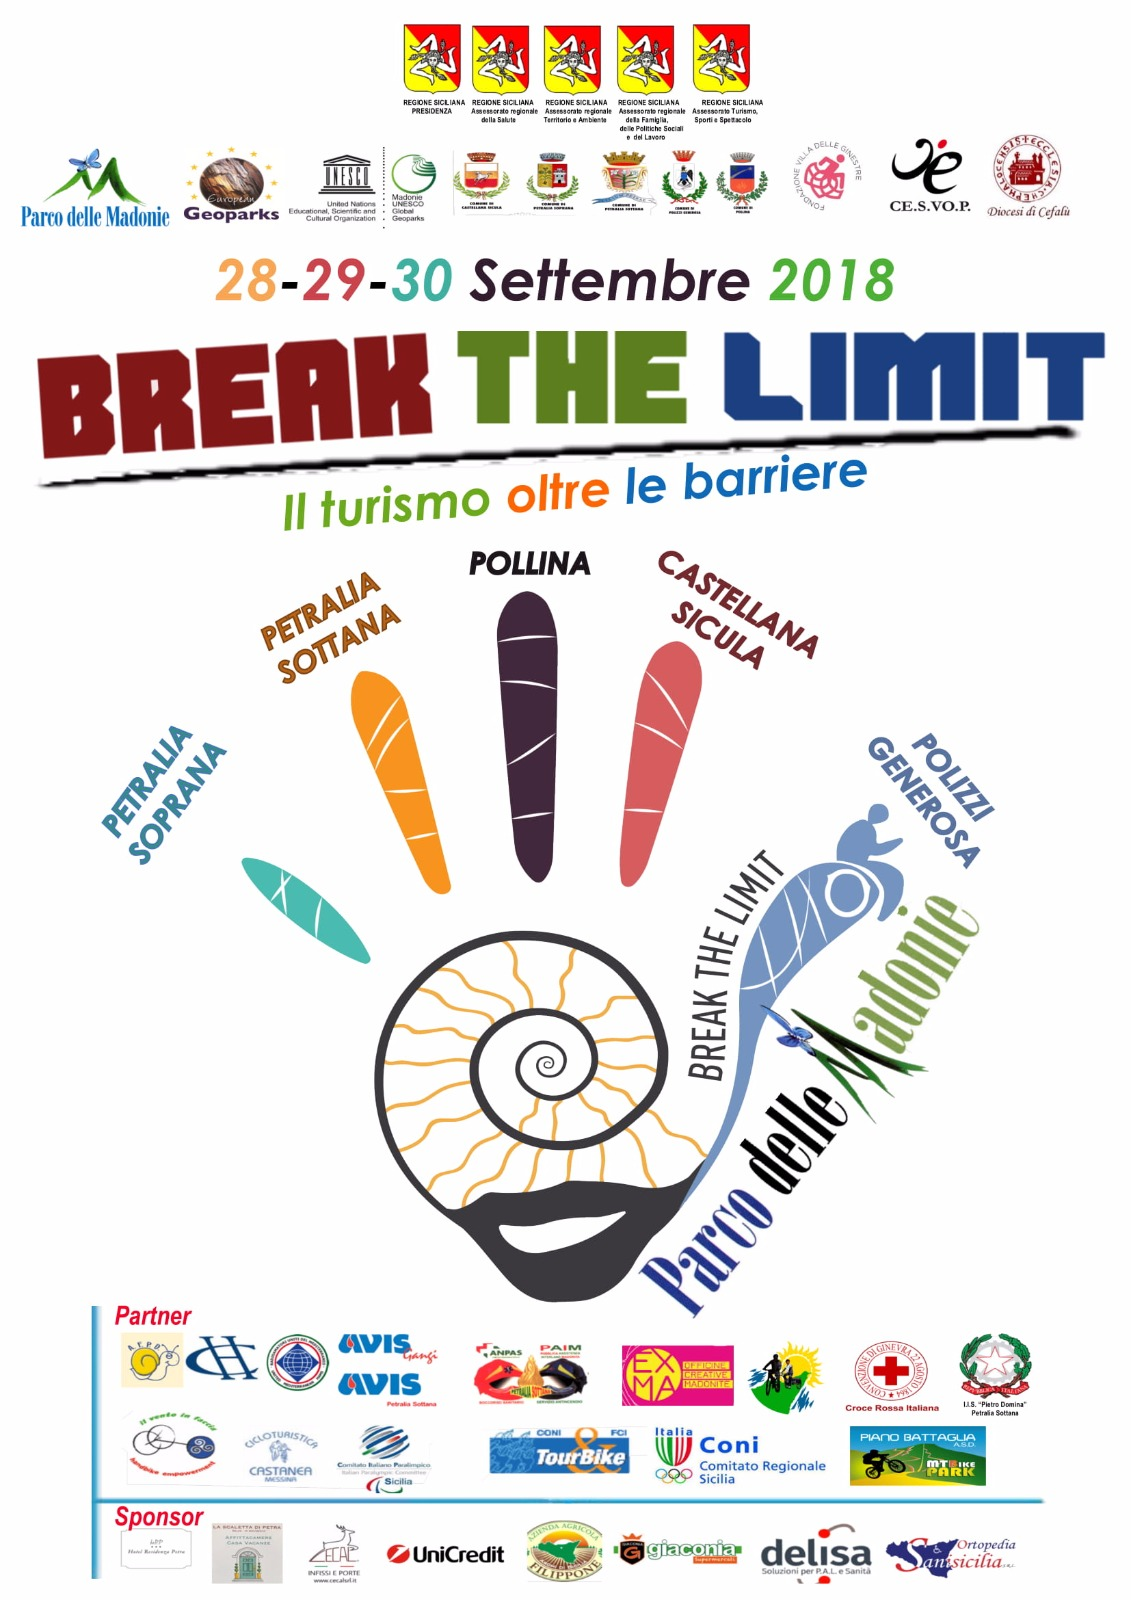 break the limit turismo oltre le barriere - WST-Show, Fiera internazionale del Turismo Sportivo e Accessibile a Malpensa Fiere